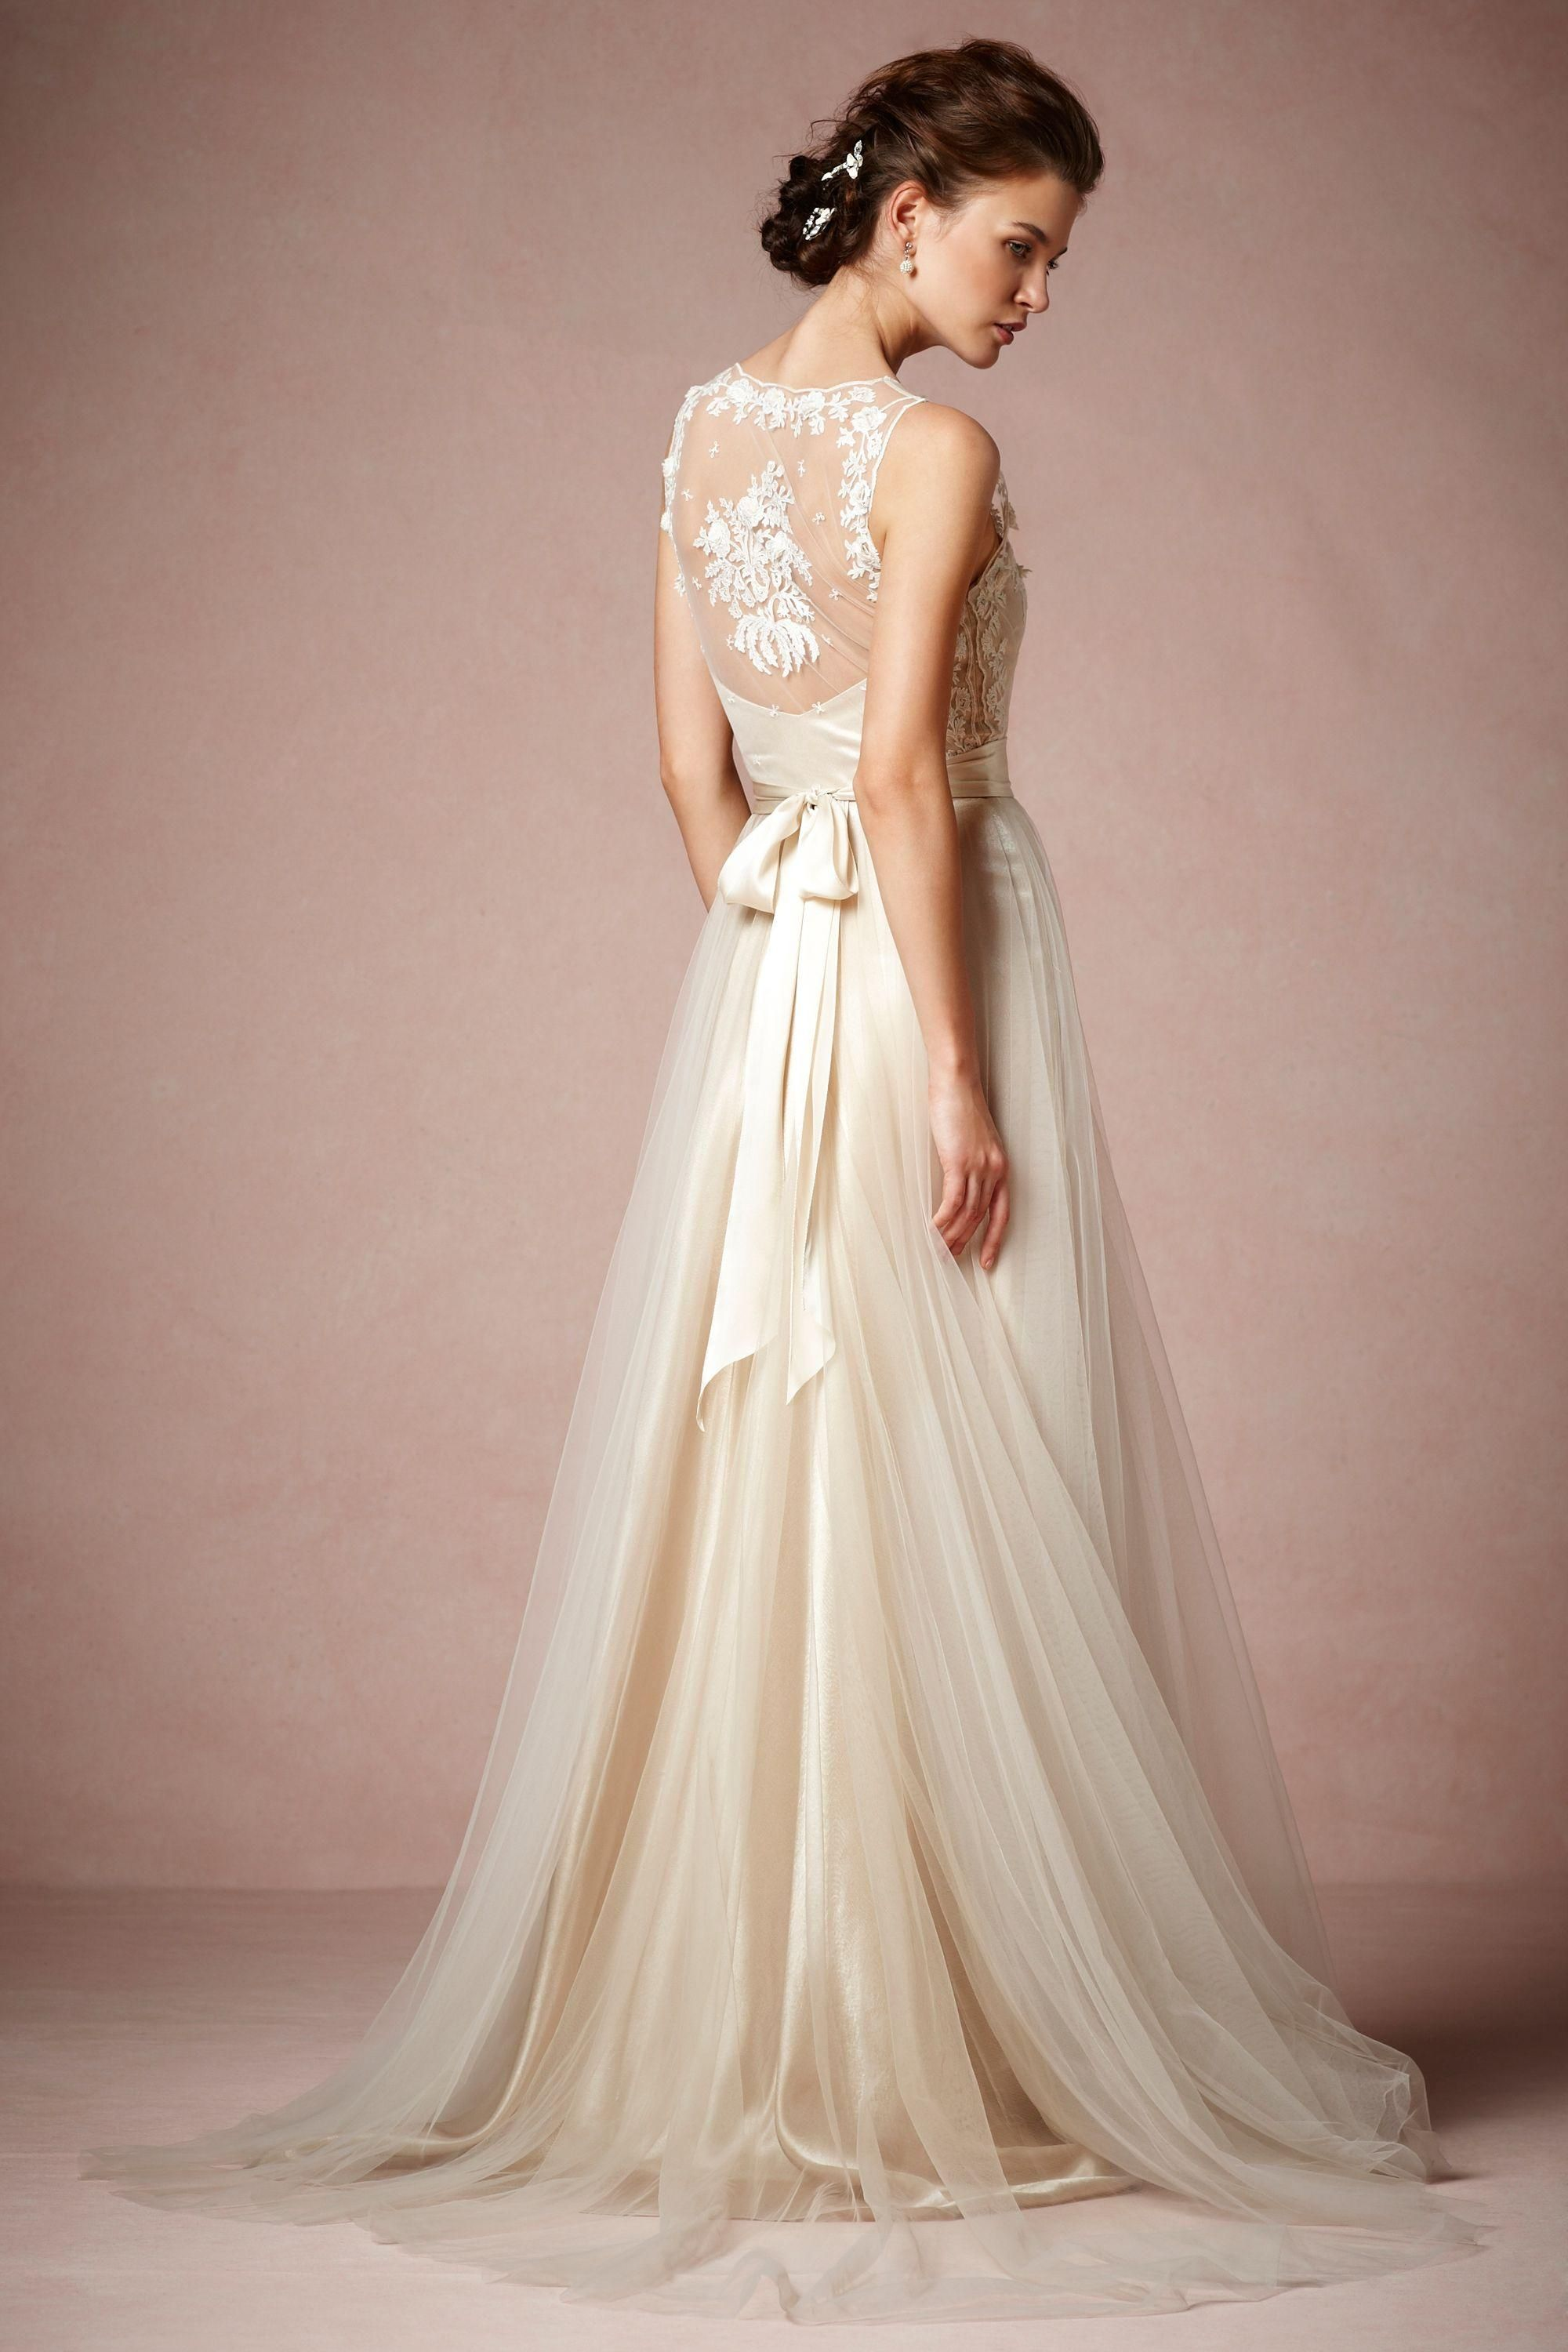 BHLDN gorgeous | Girly Things :) | Pinterest | Novios, Boda y ...